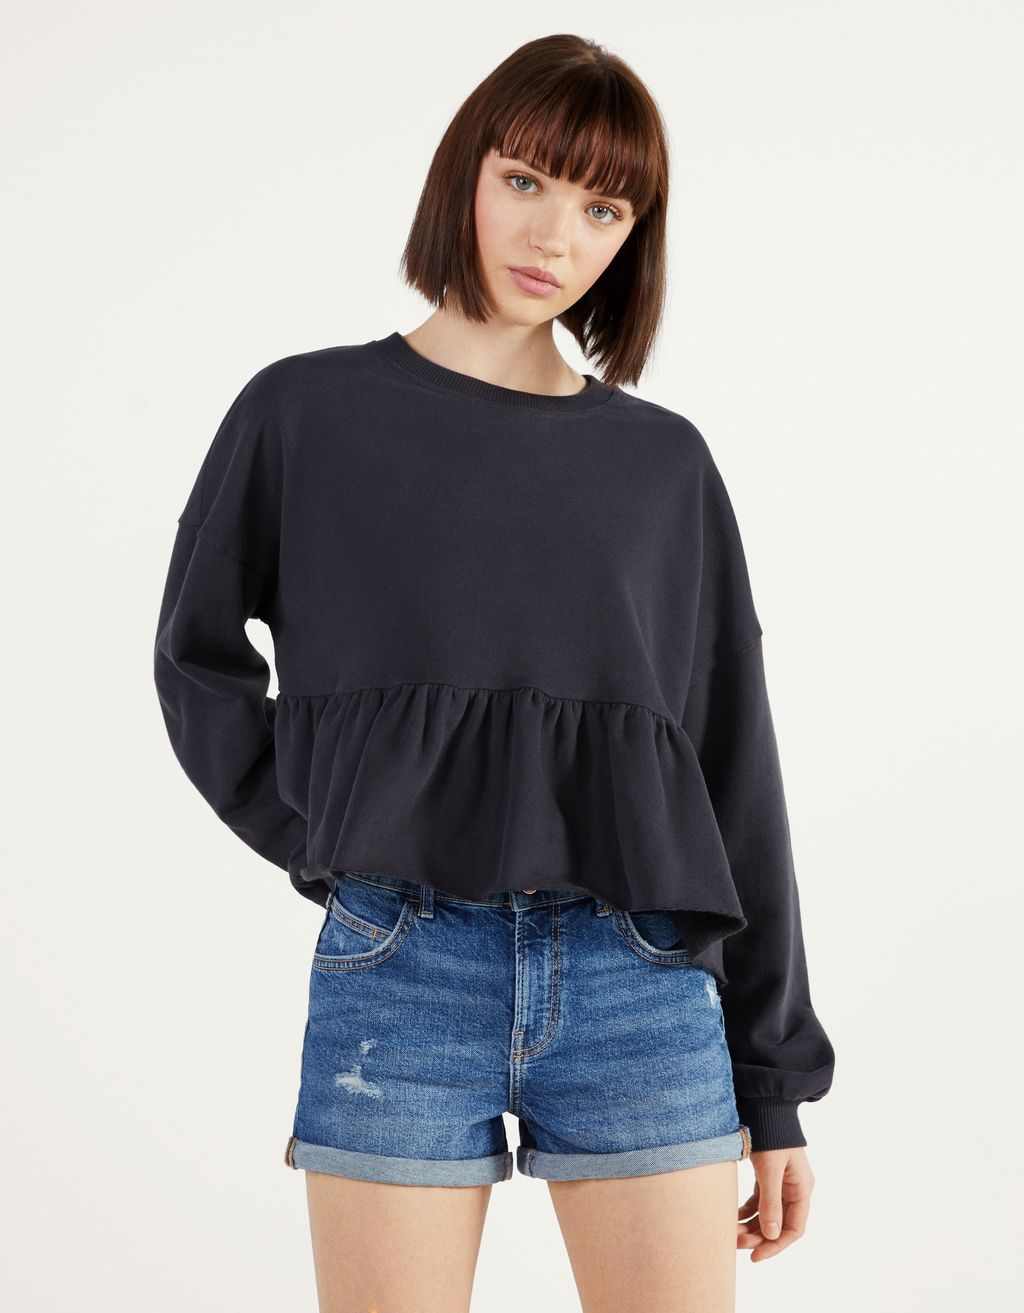 Sweatshirt with ruffle trims